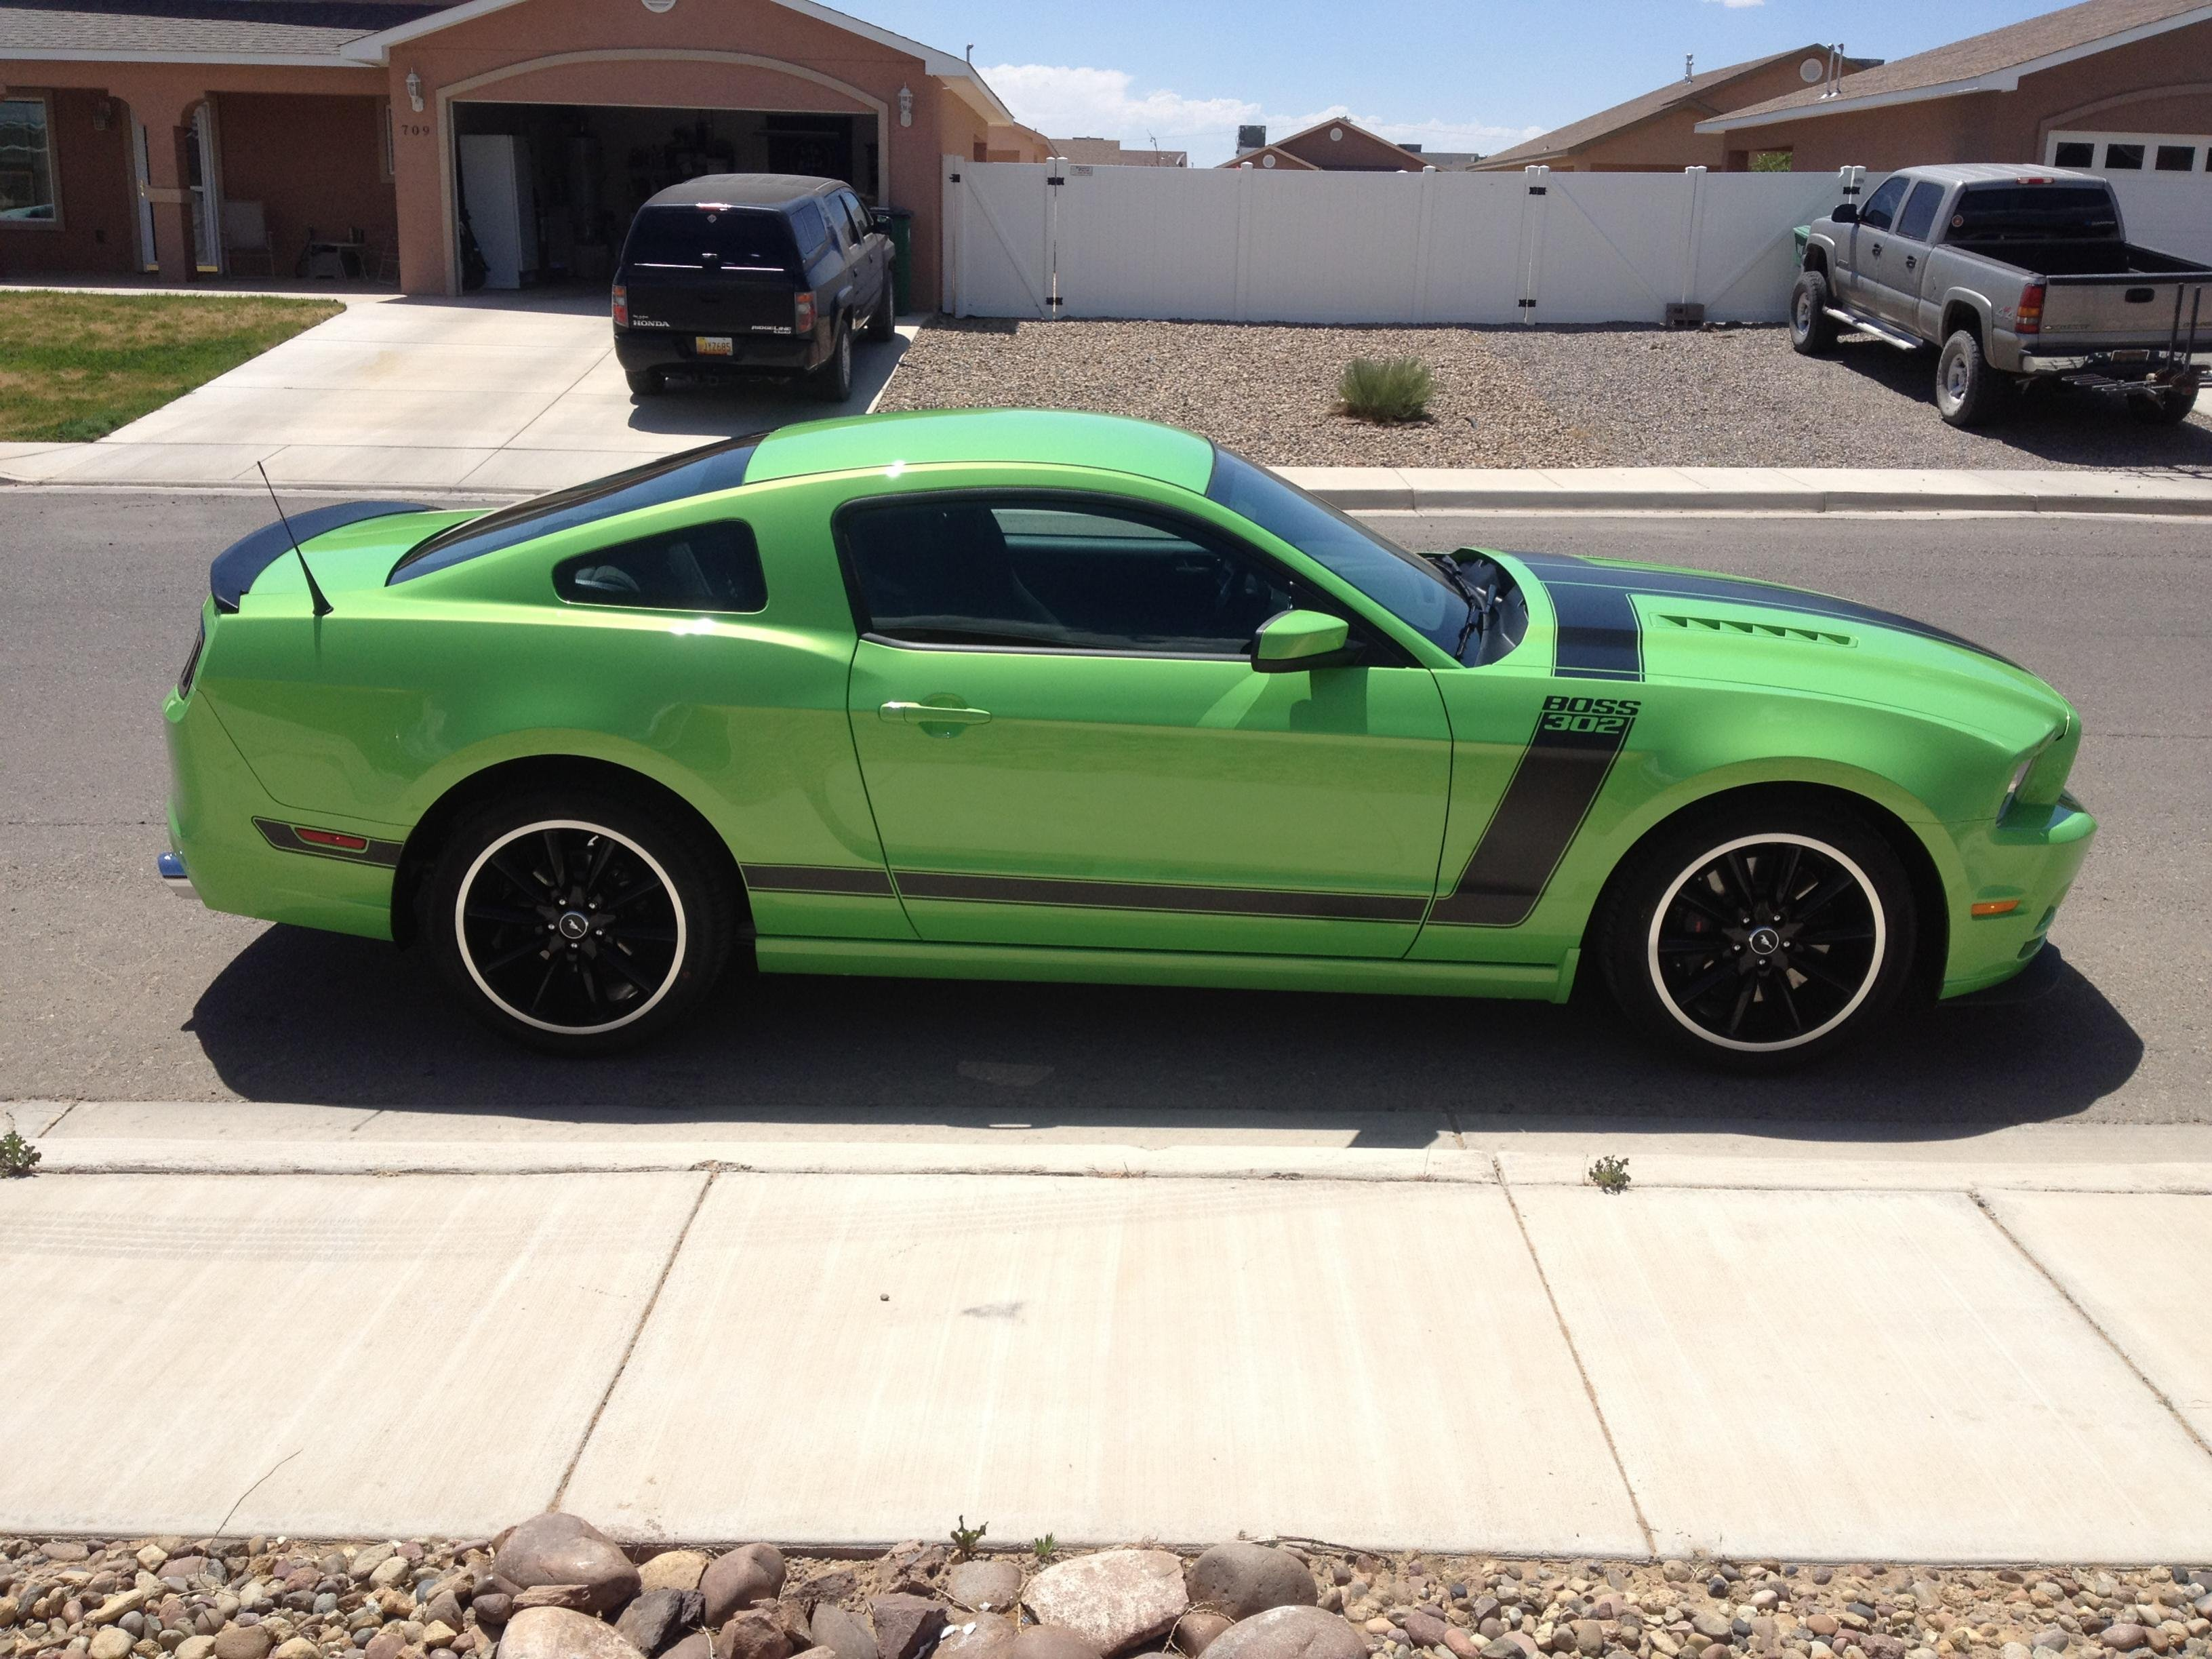 Paint Sealer and Wax on Vinyl BOSS Stripes? - Ford Mustang Forum